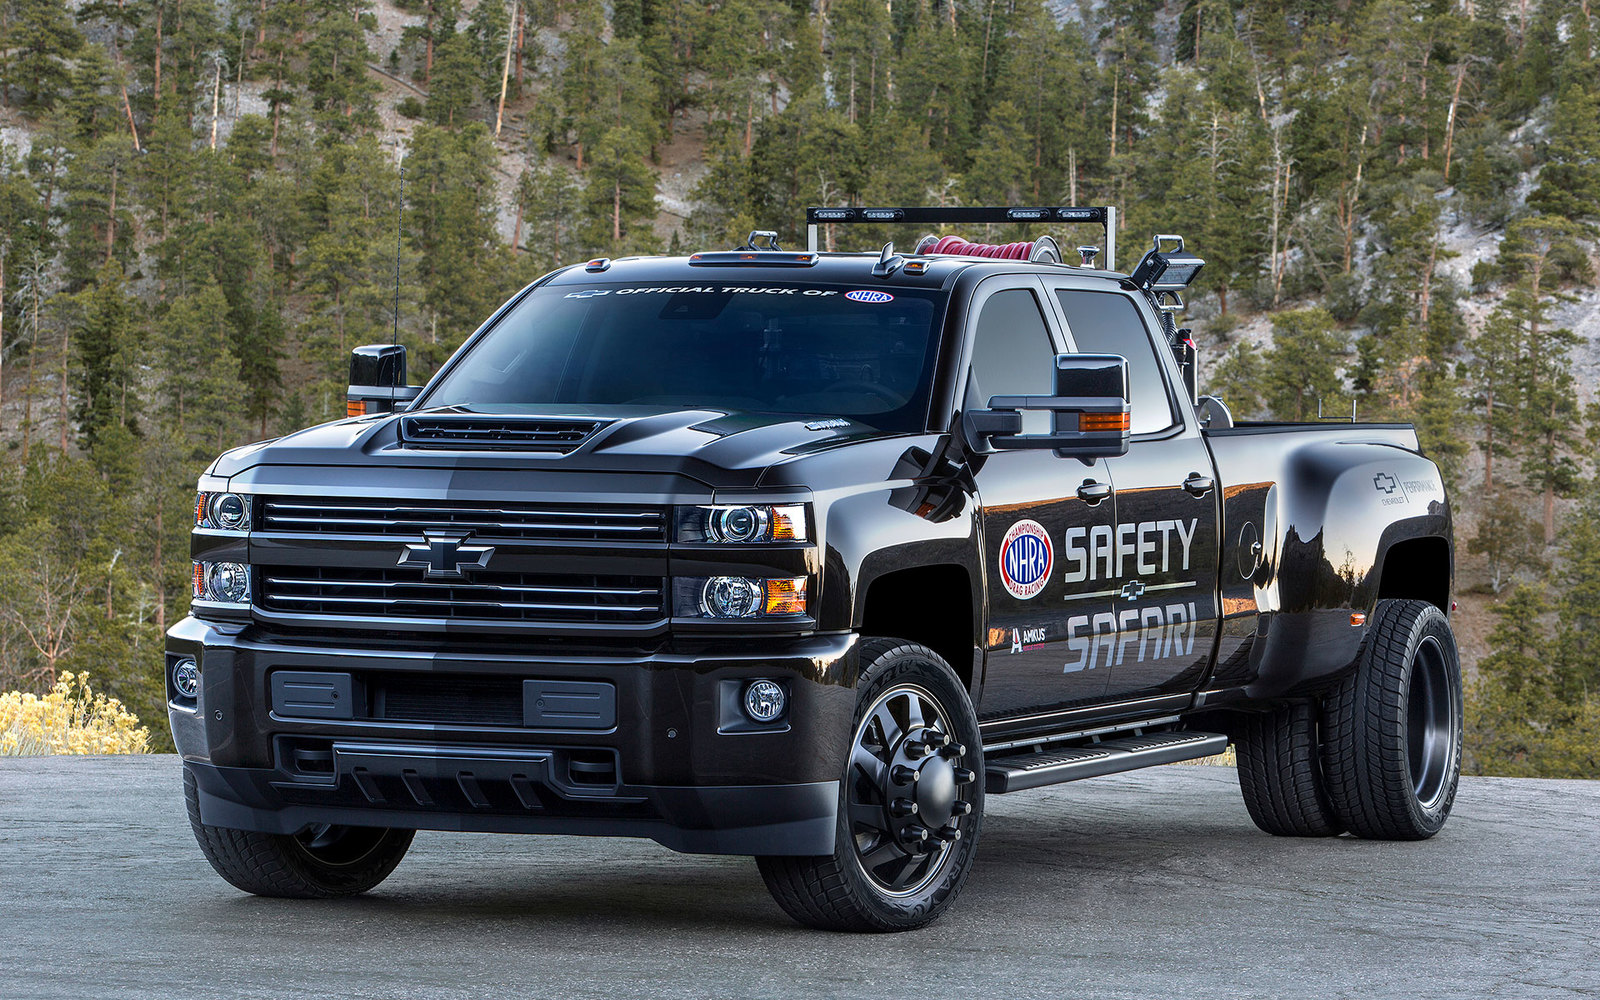 Chevrolet Silverado Safety Safari 3500HD